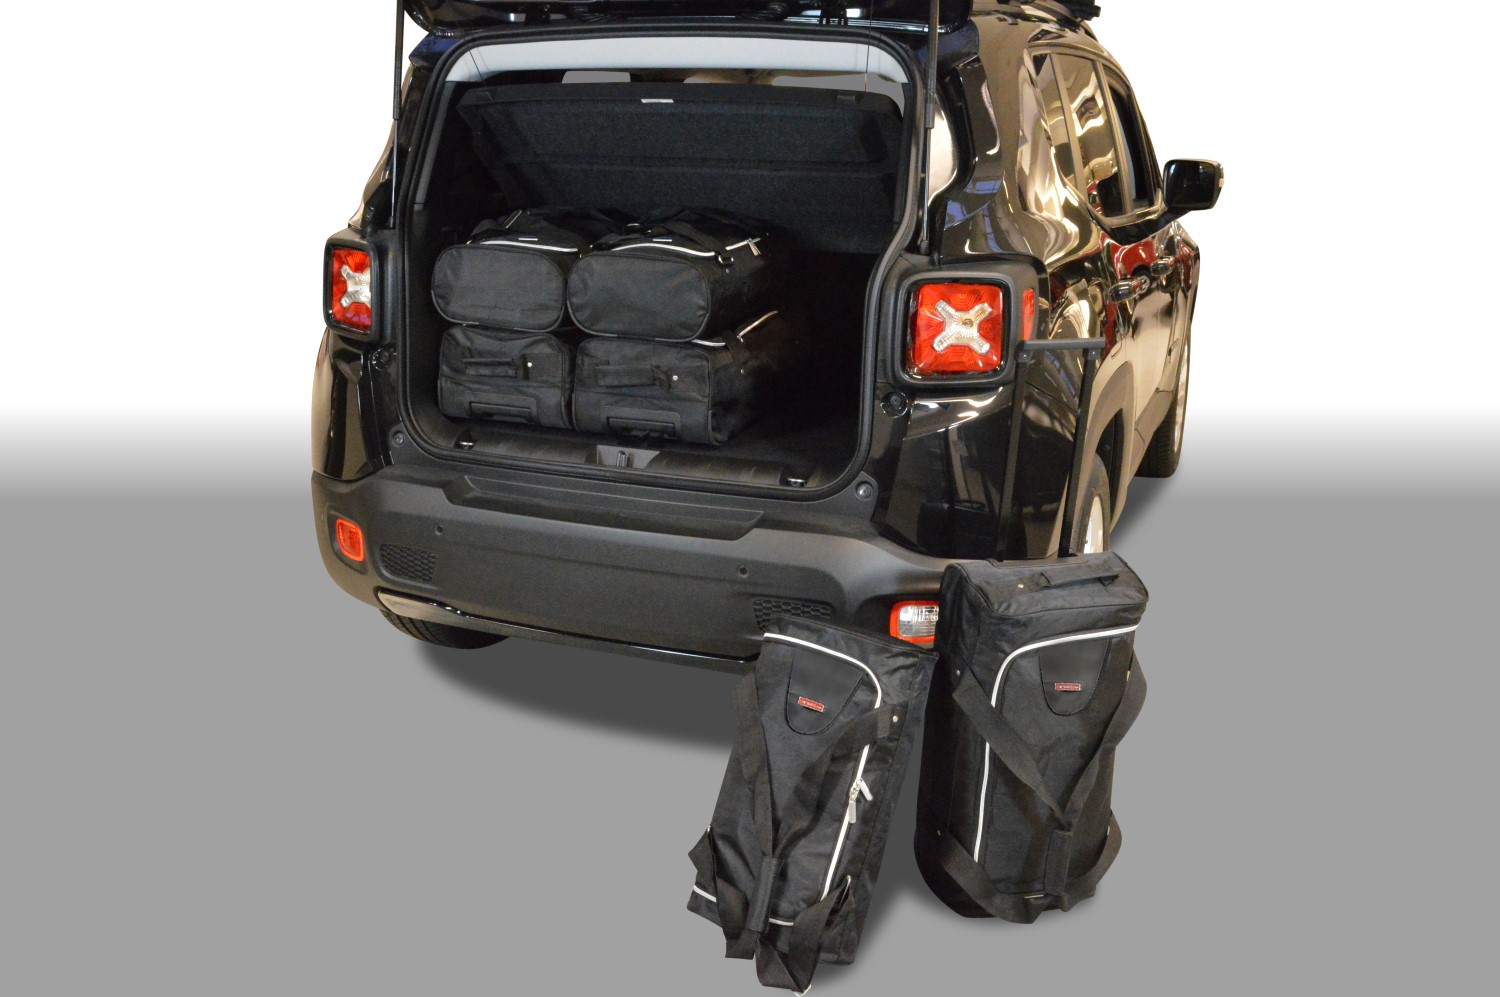 car bags sacs de voyage jeep renegade 2014 pr sent car bags set de sacs de voyage. Black Bedroom Furniture Sets. Home Design Ideas